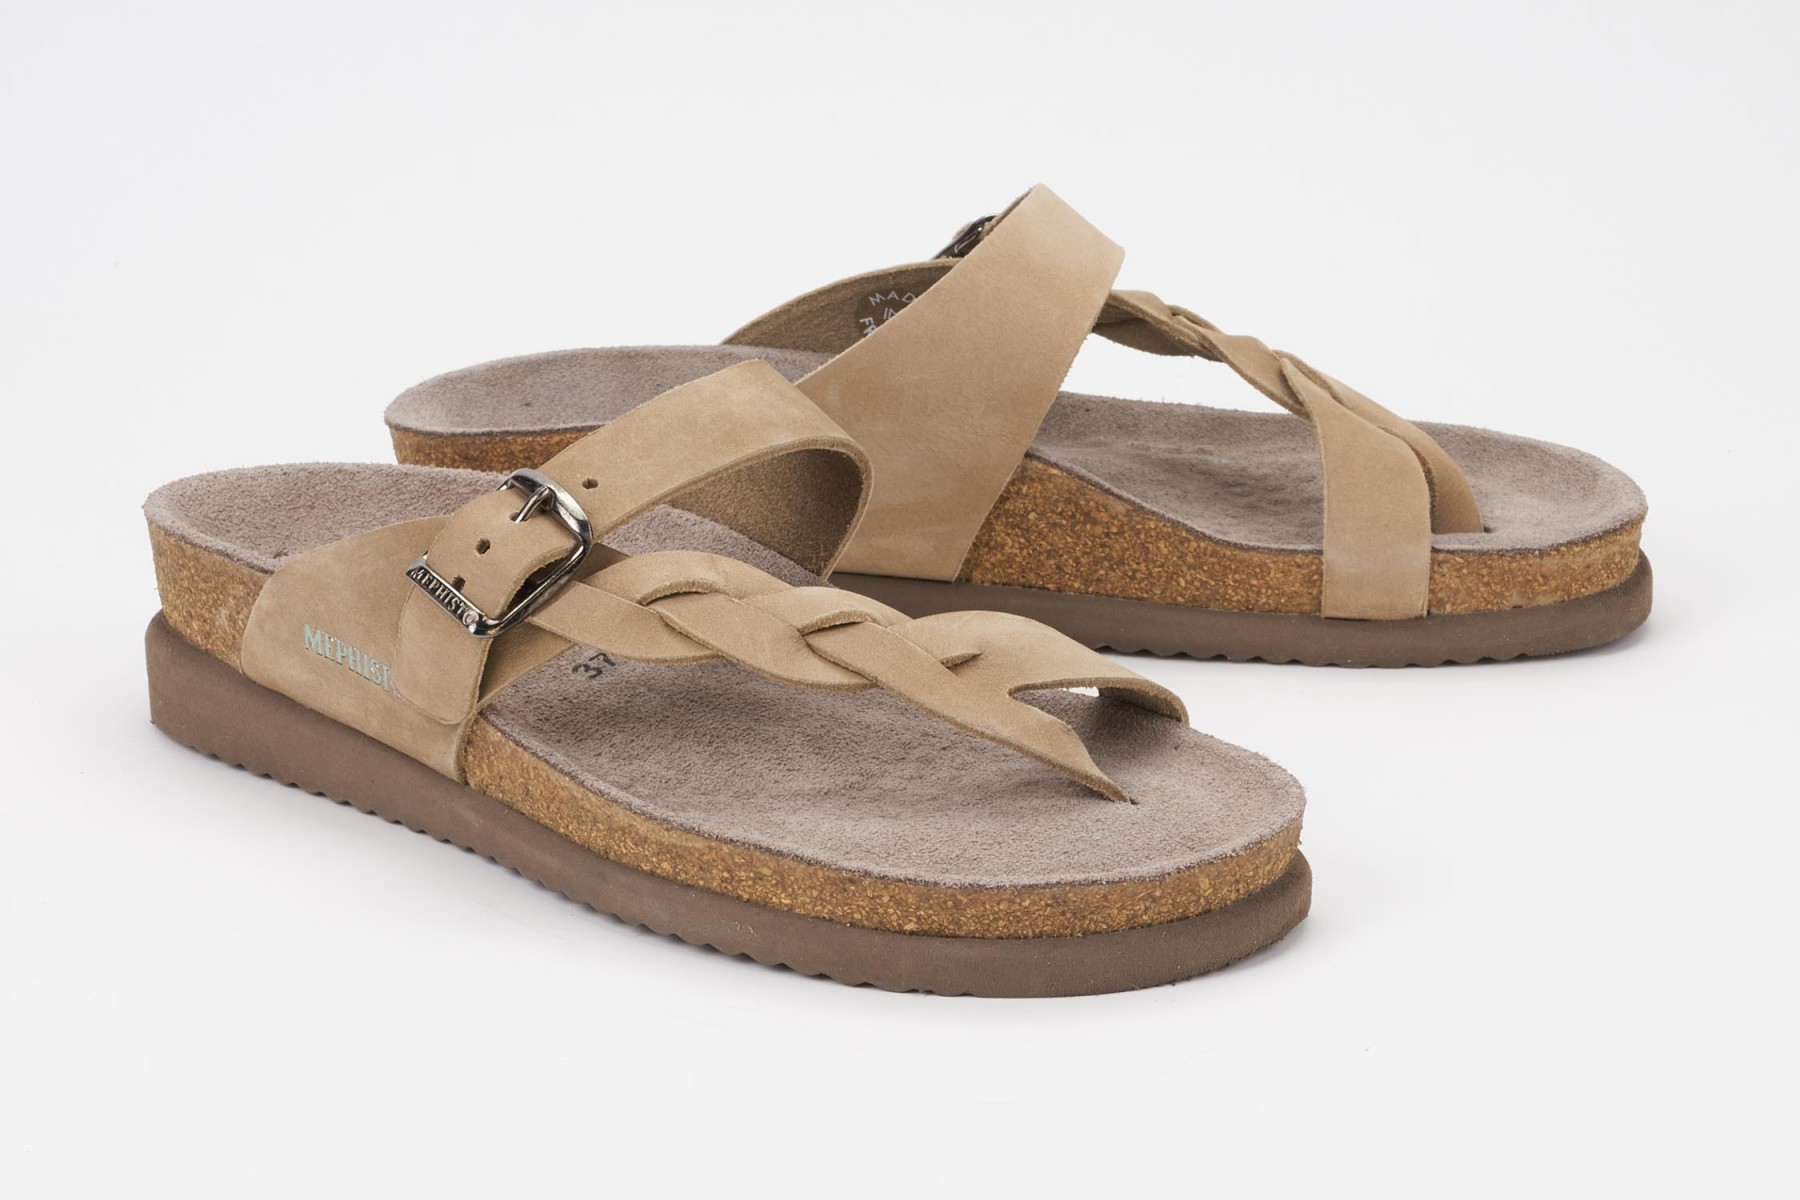 aa306c0dd02b HELEN TWIST Sandal - MEPHISTO Women s Cork Footbed Sandals